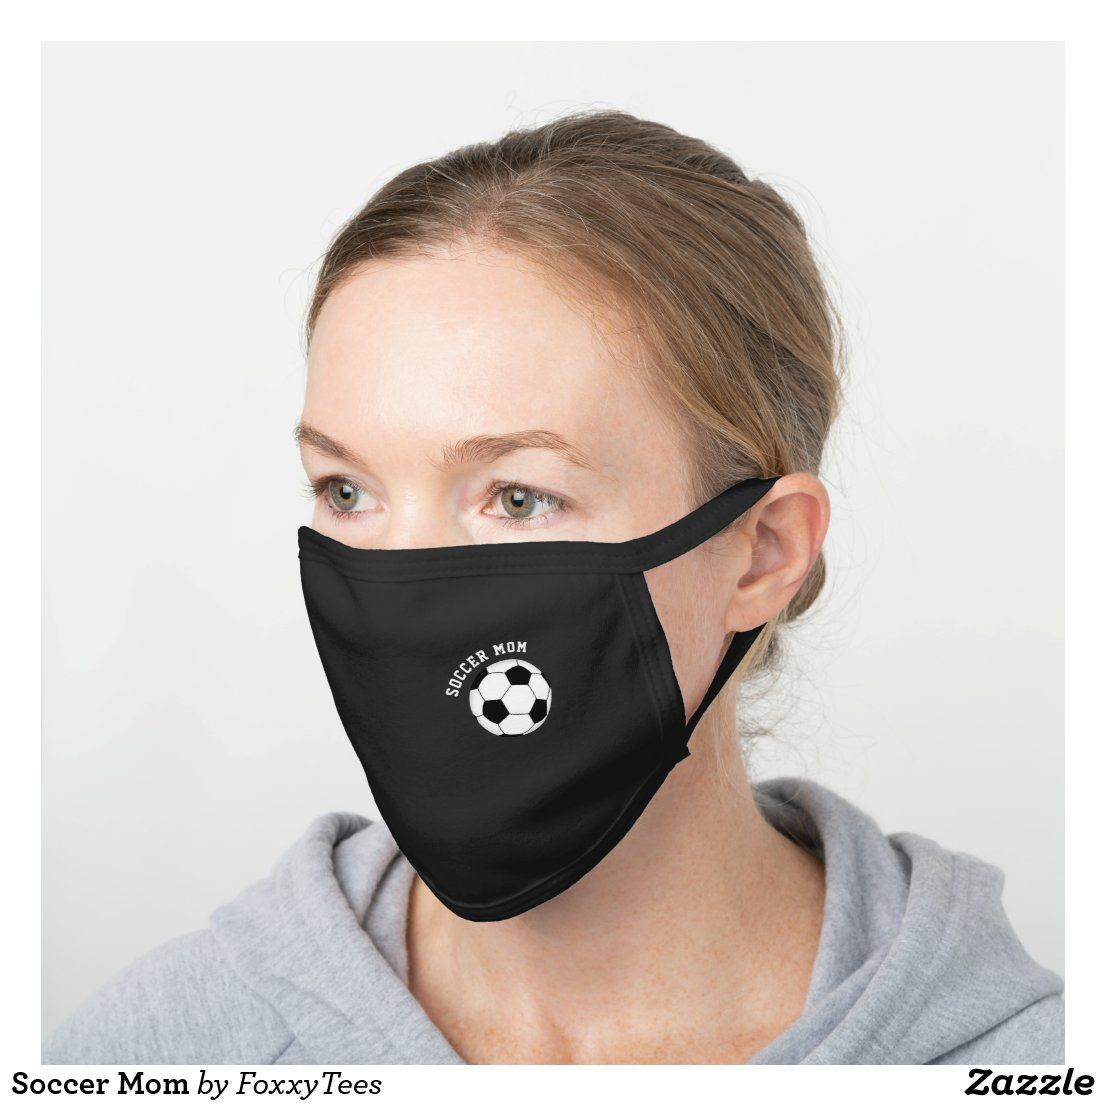 Soccer Mom Black Cotton Face Mask Zazzle Com In 2020 Soccer Mom Soccer Dad Face Mask